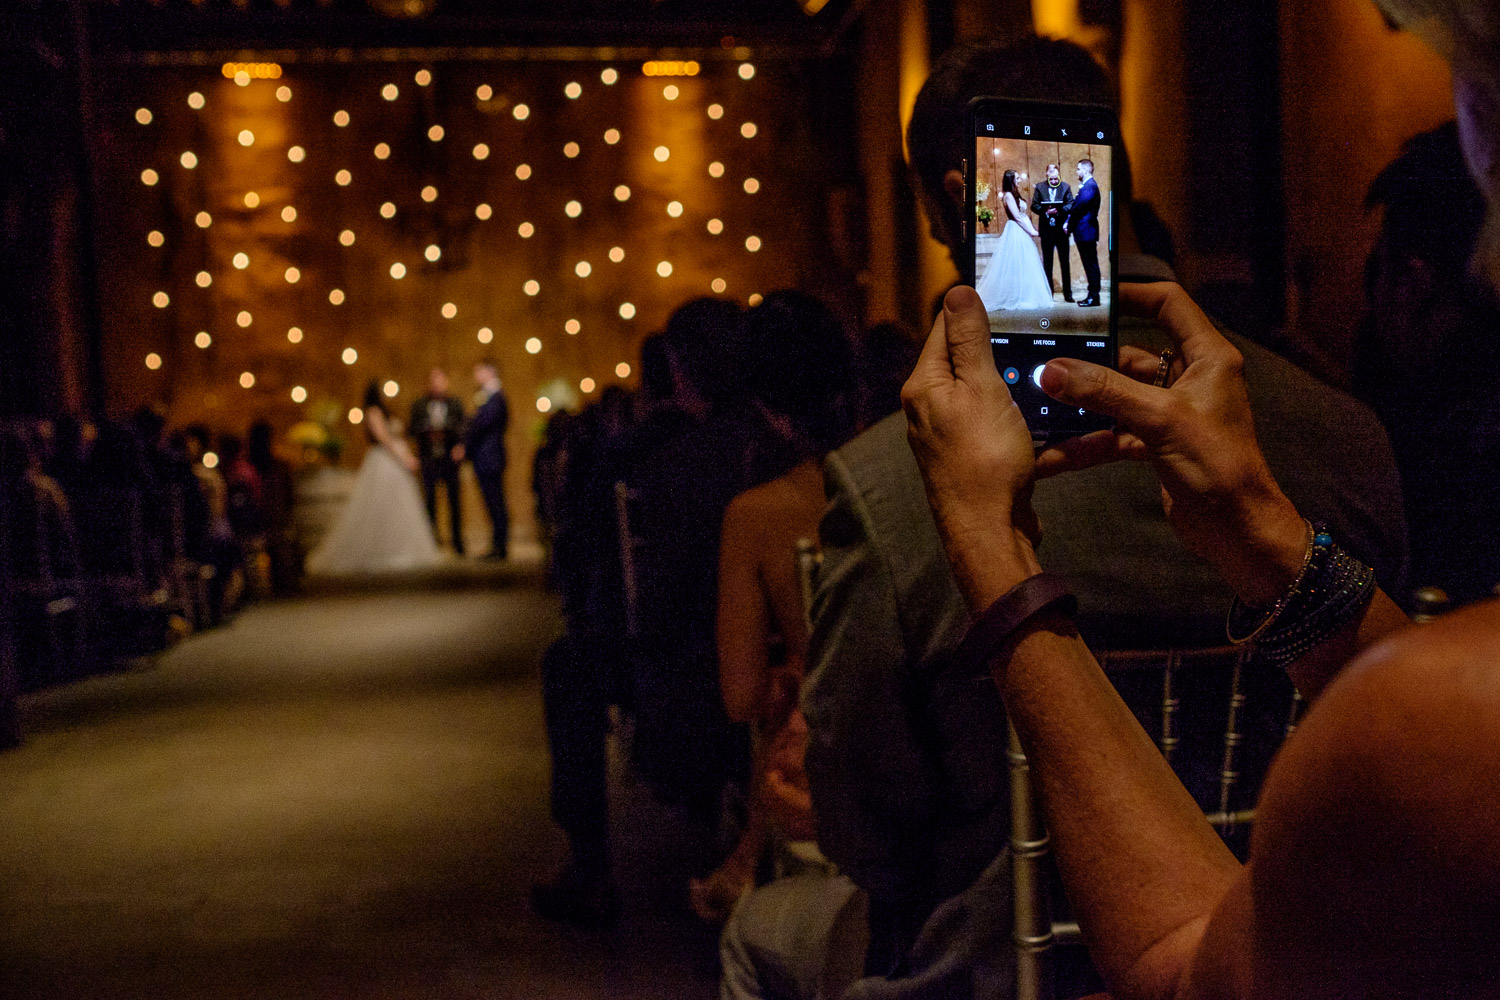 fermenting-cellar-wedding-toronto-007.jpg